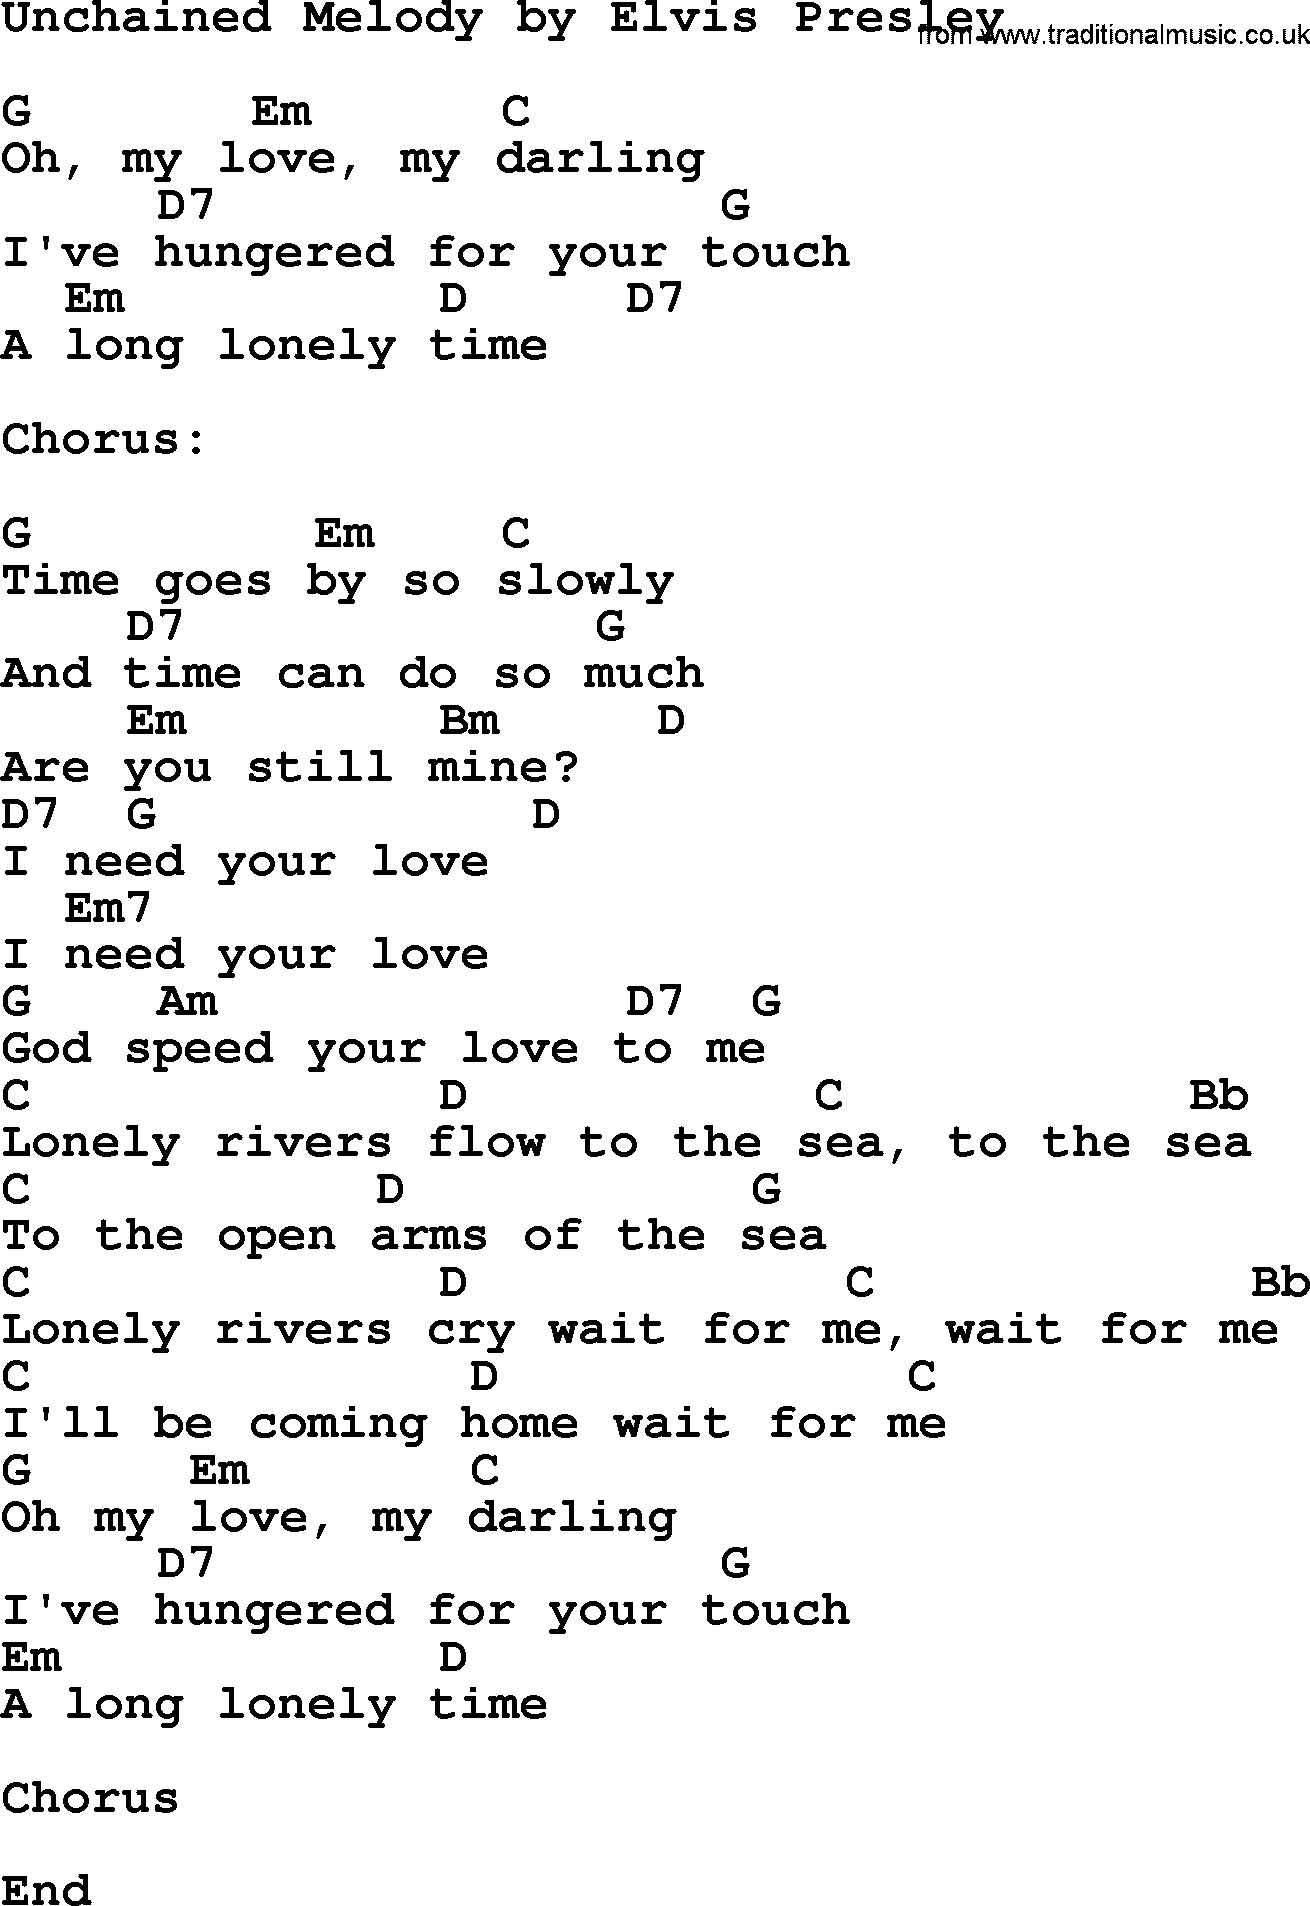 Unchained Melody By Elvis Presley Lyrics And Chords